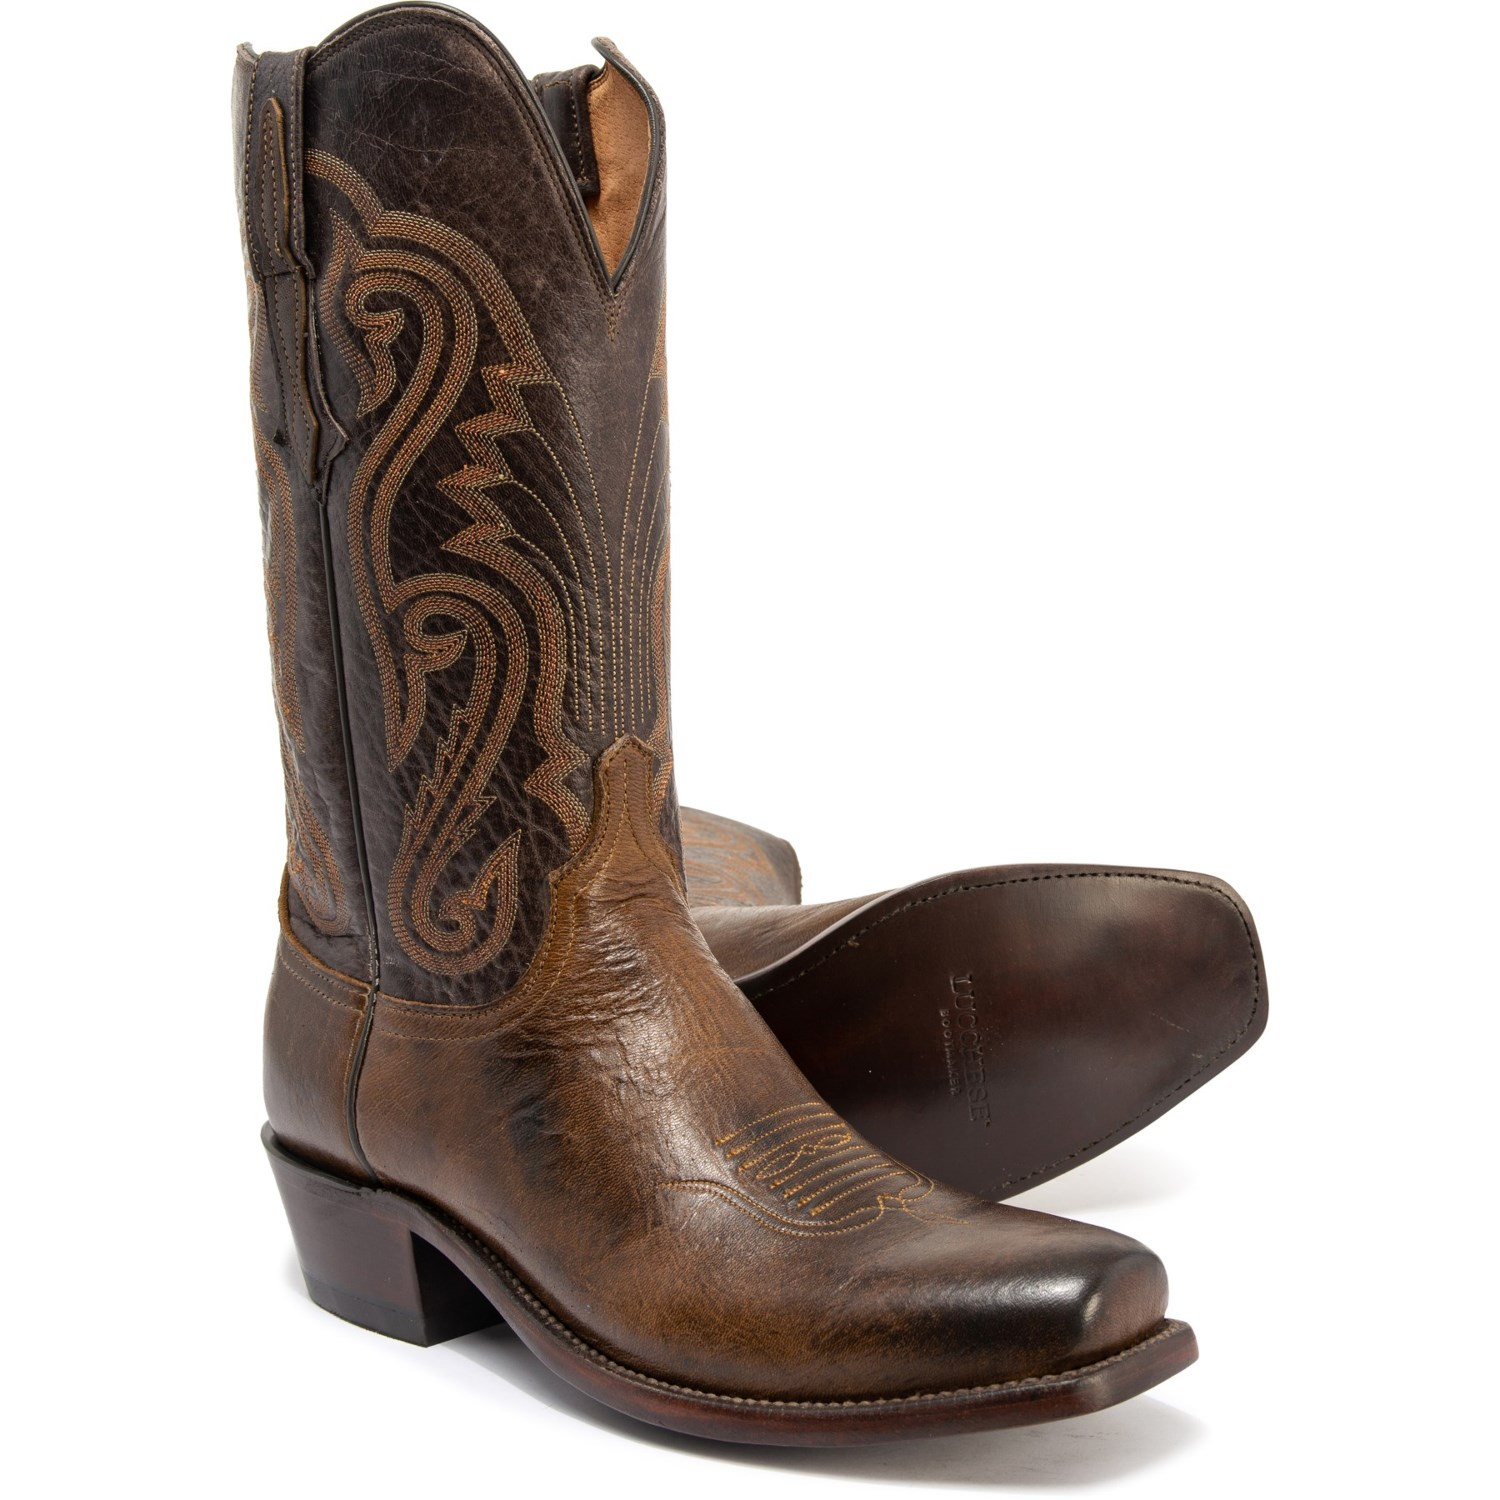 41ccb29ef53 Lucchese Estes Cowboy Boots (For Men)